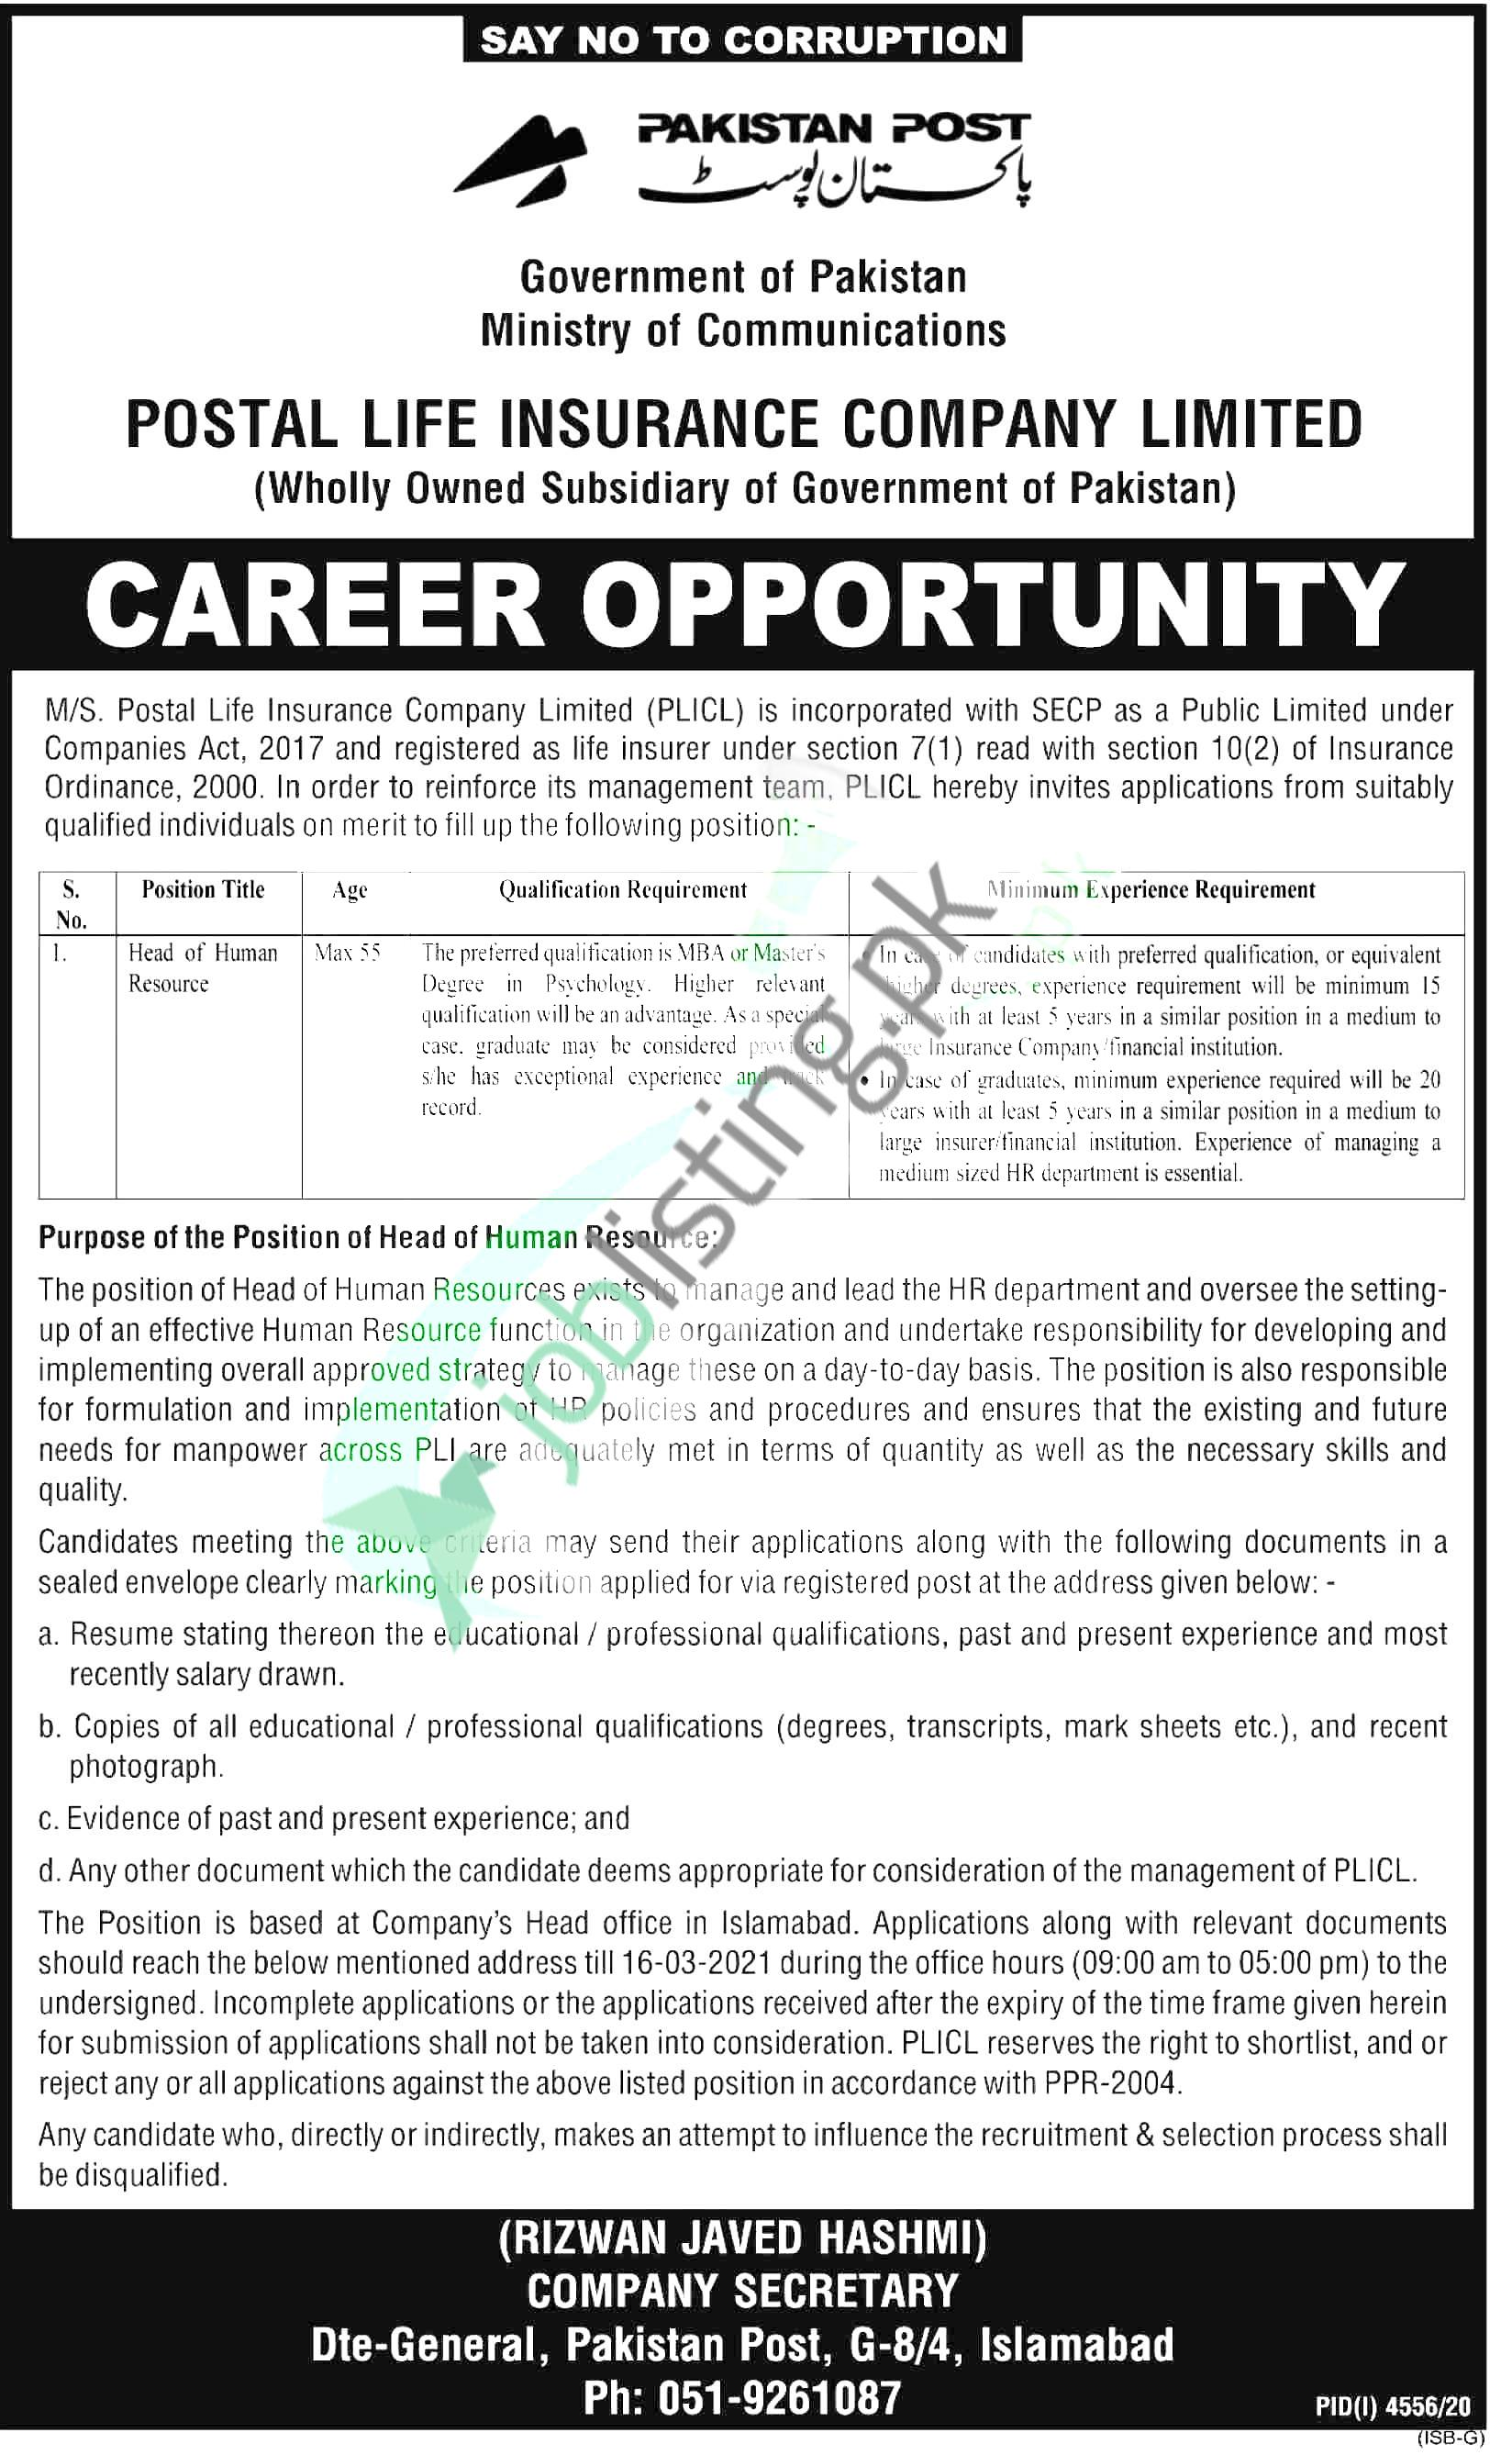 Ministry of Communication Jobs 2021 Application Form Download Online